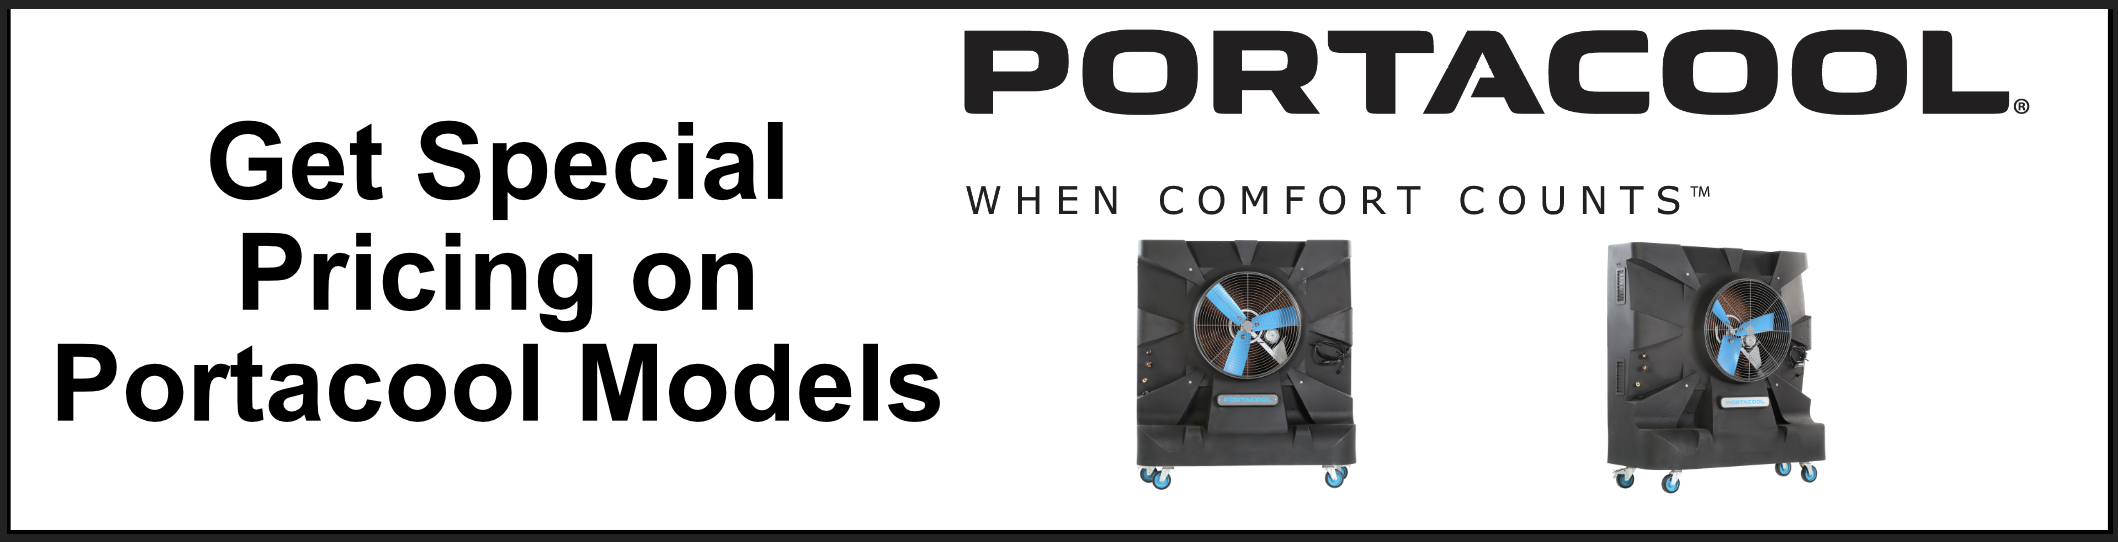 portacool-savings-2.png